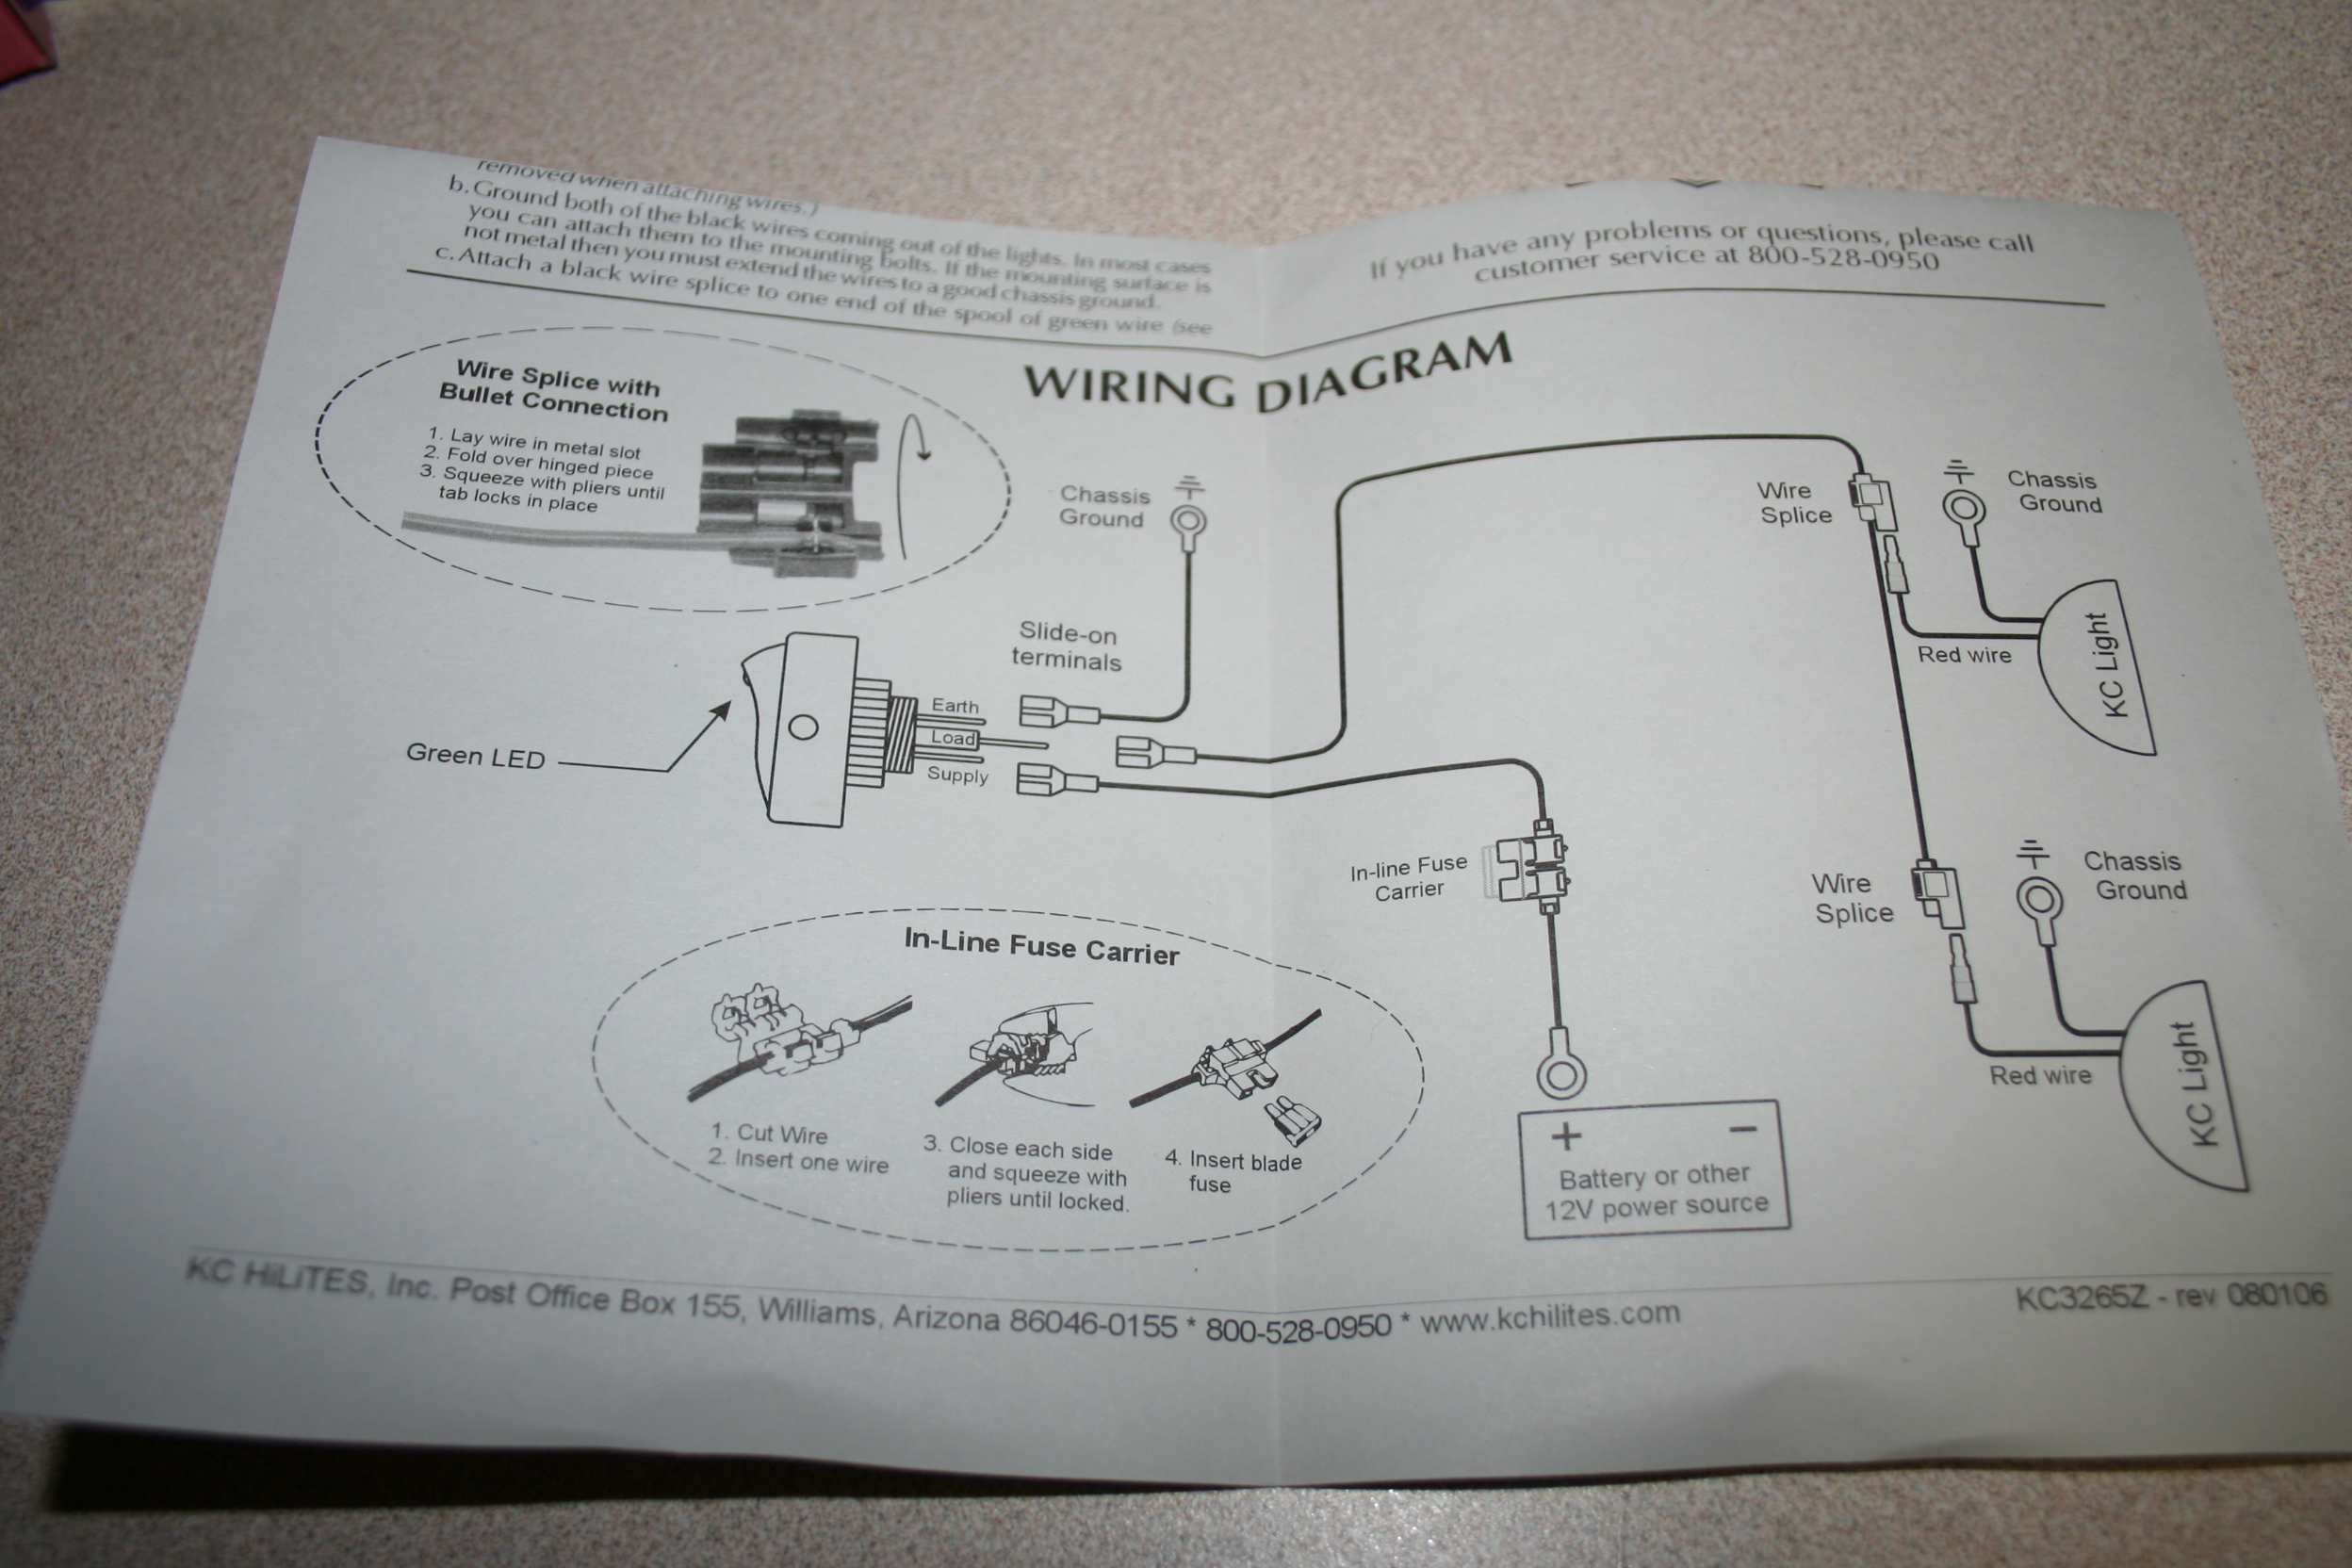 Fj Cruiser Wiring Diagram 2007 Fj Cruiser Light Wiring Diagram